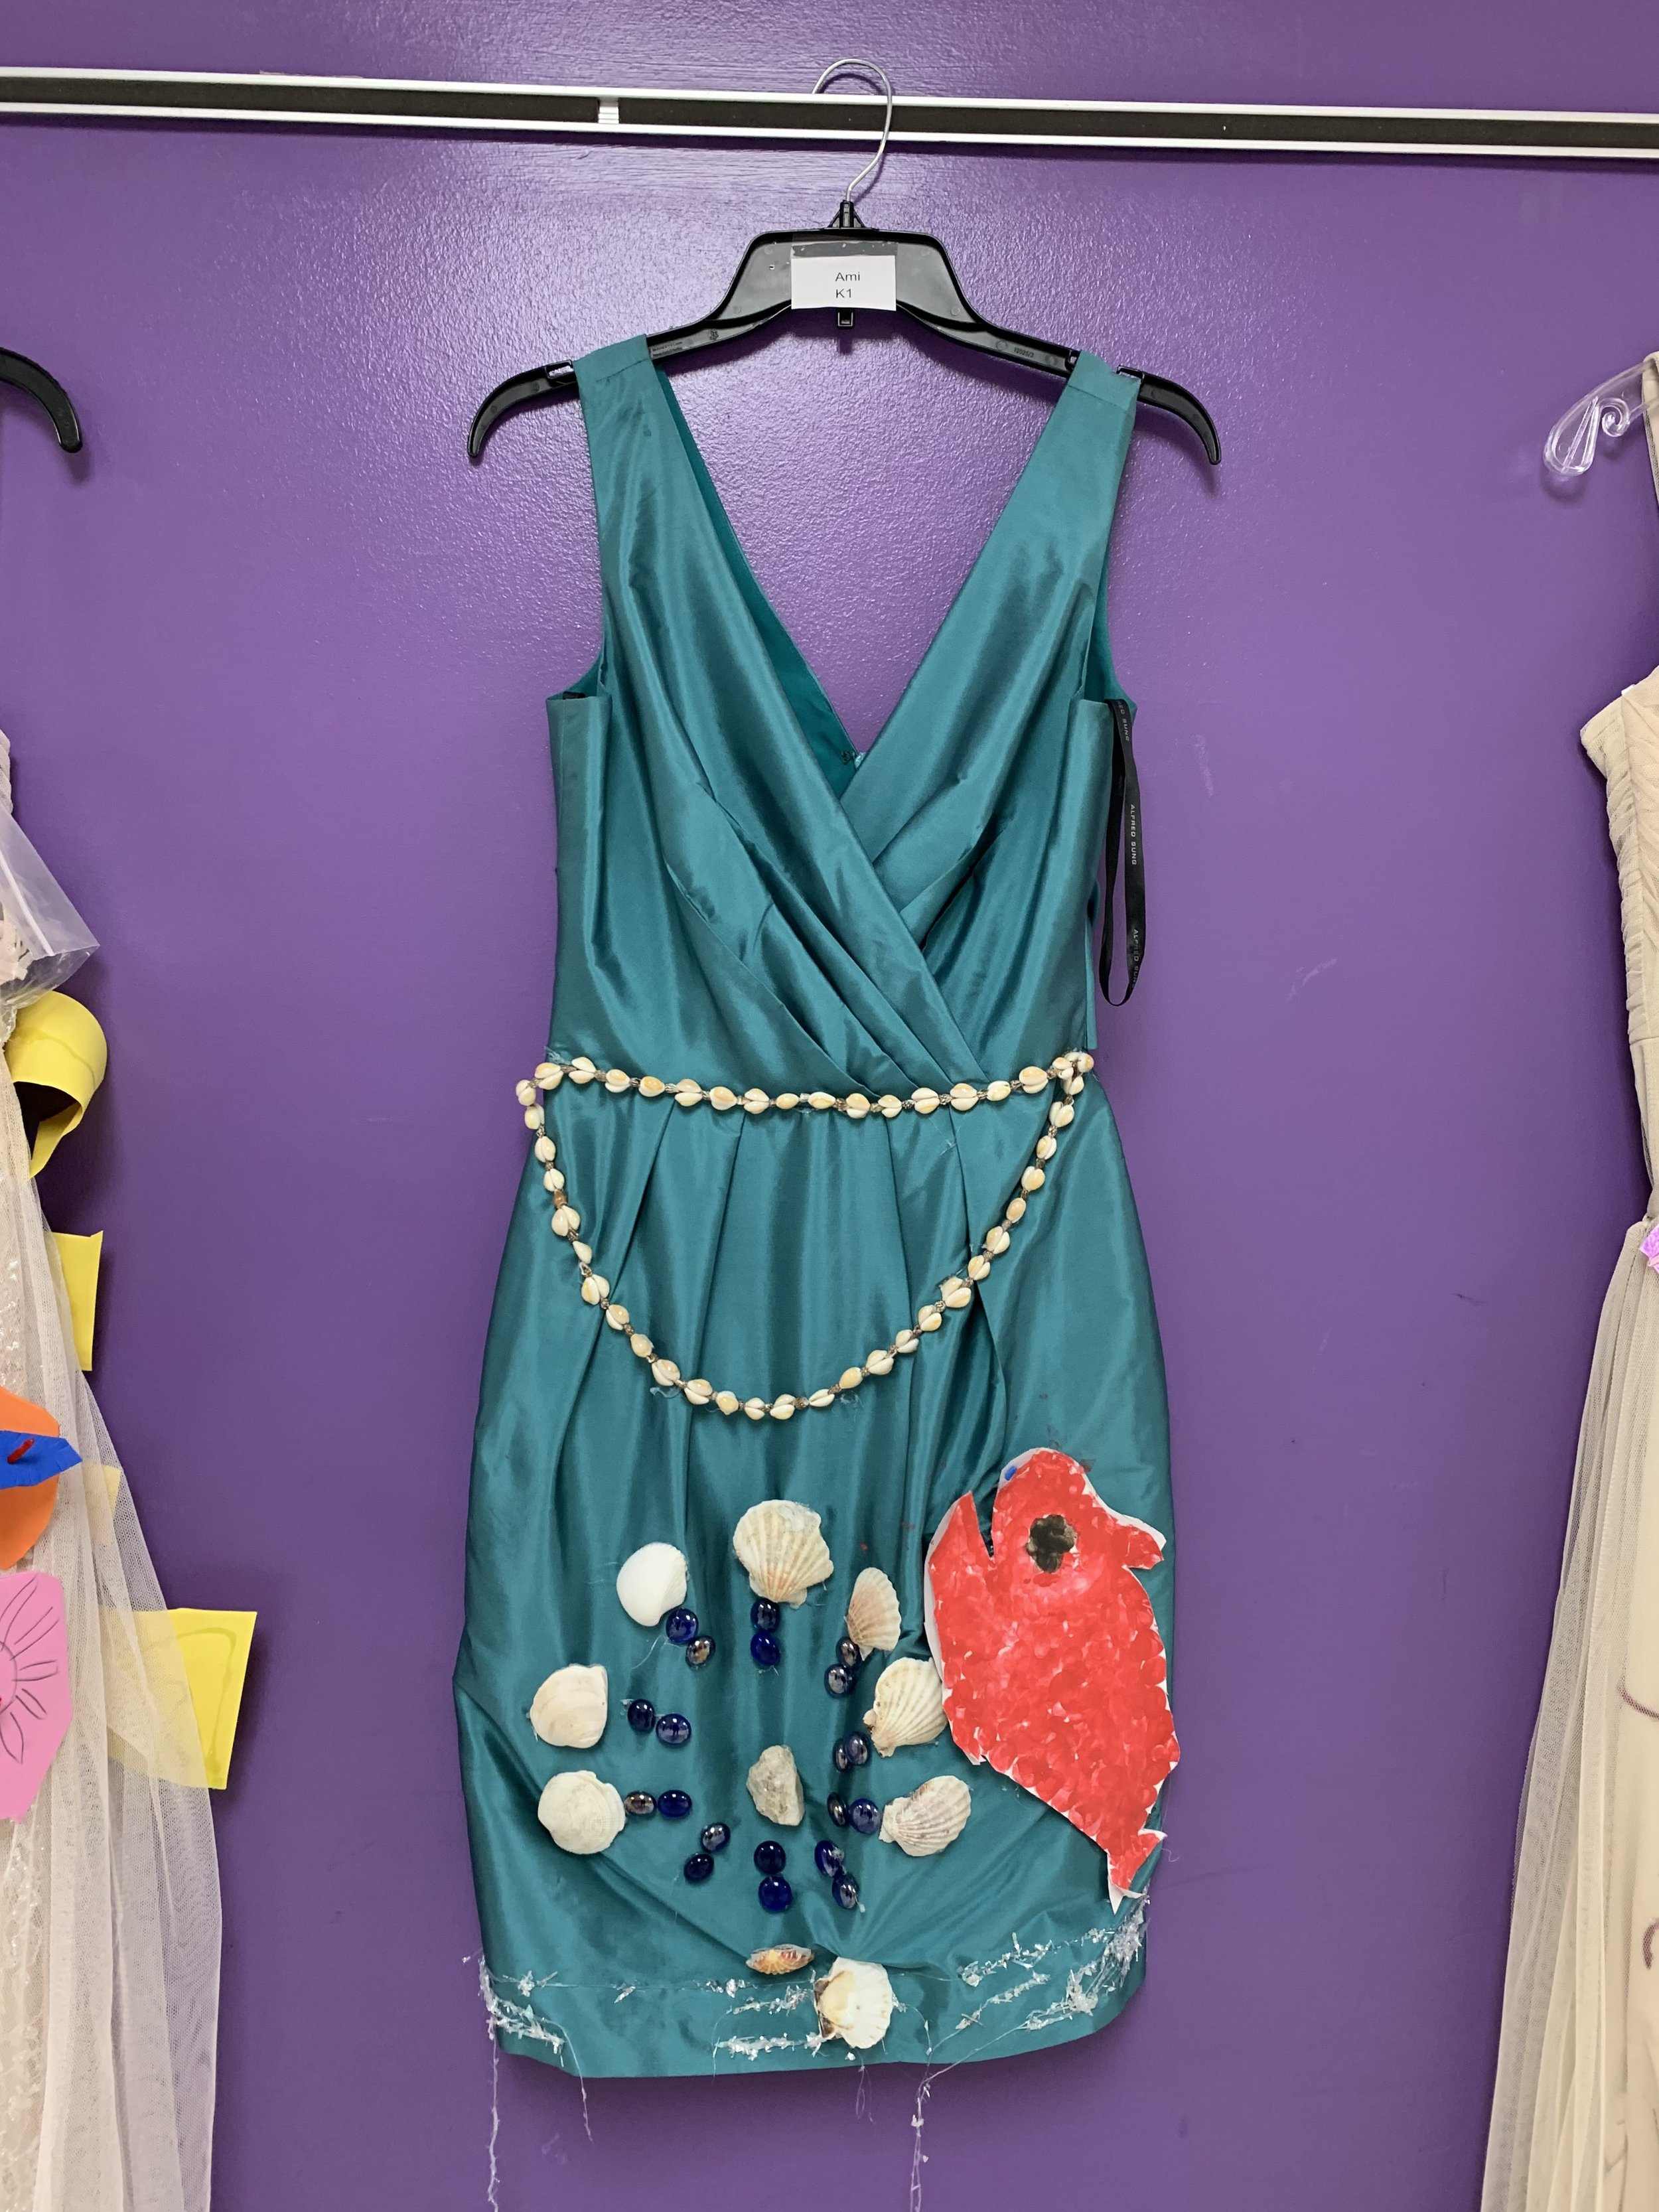 Elementary schoolers decorate dresses as part of art education